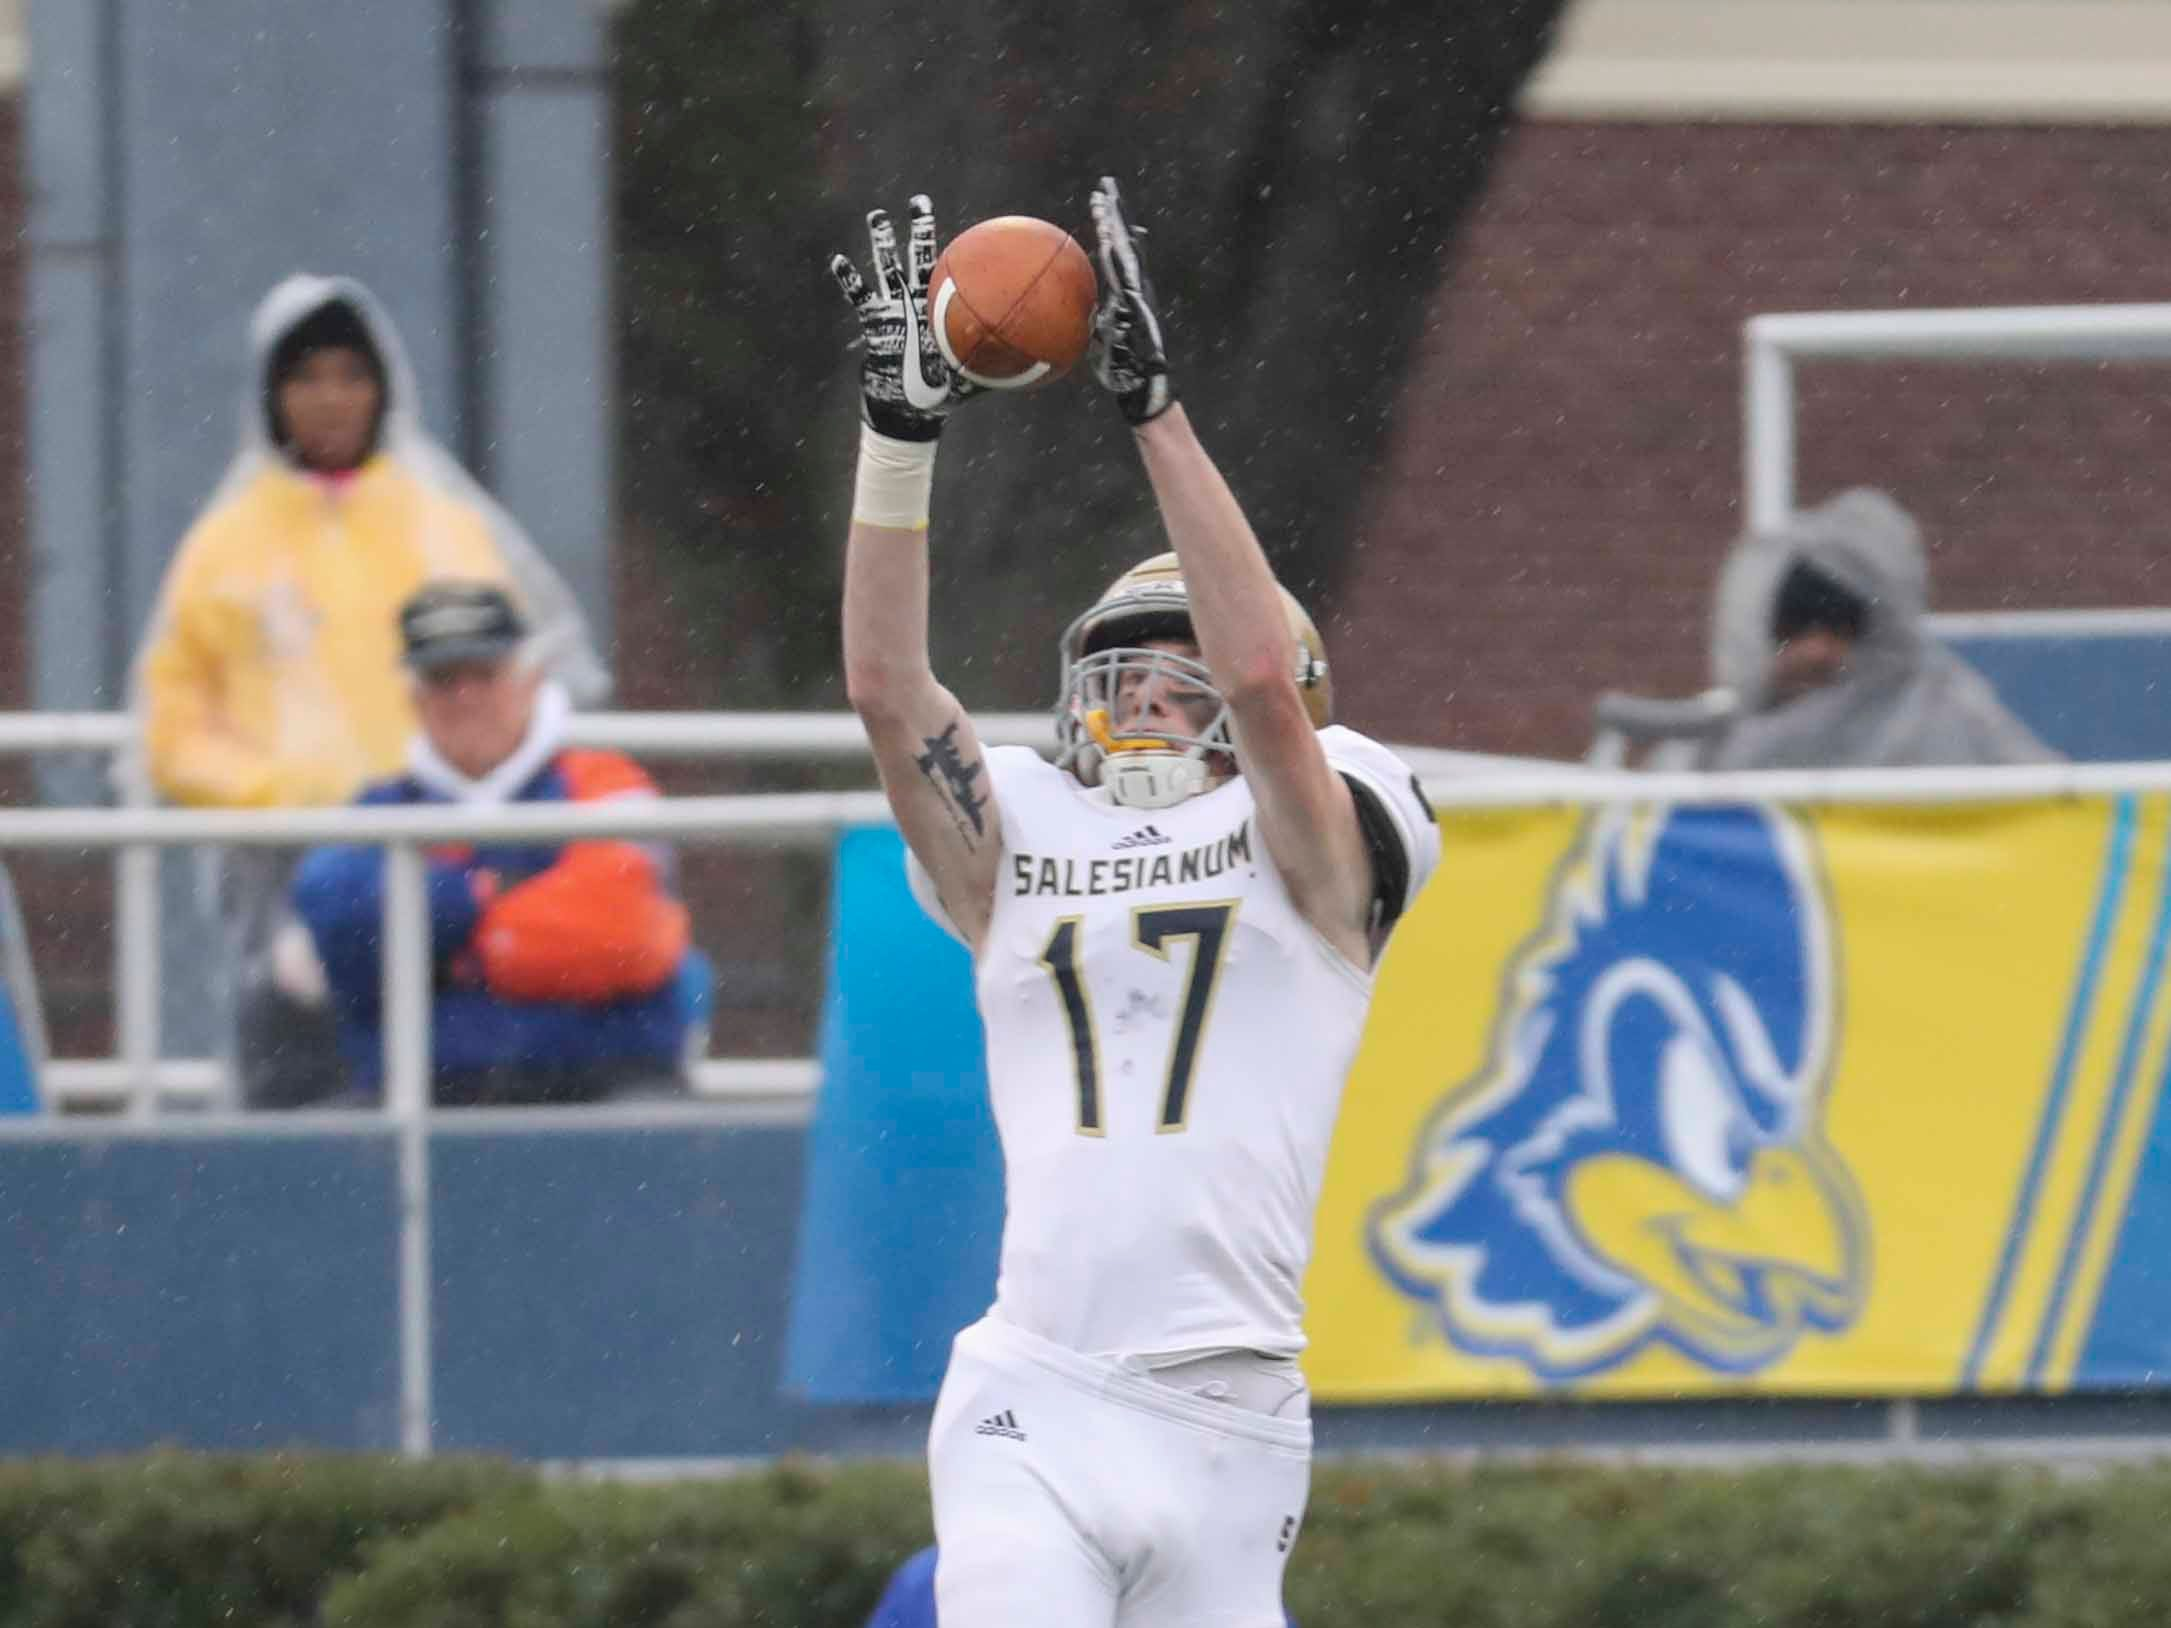 Salesianum's Sean Regan grabs a pass in the third quarter of the Golden Knights' 33-7 win in the DIAA Division I state tournament championship game at Delaware Stadium Saturday.